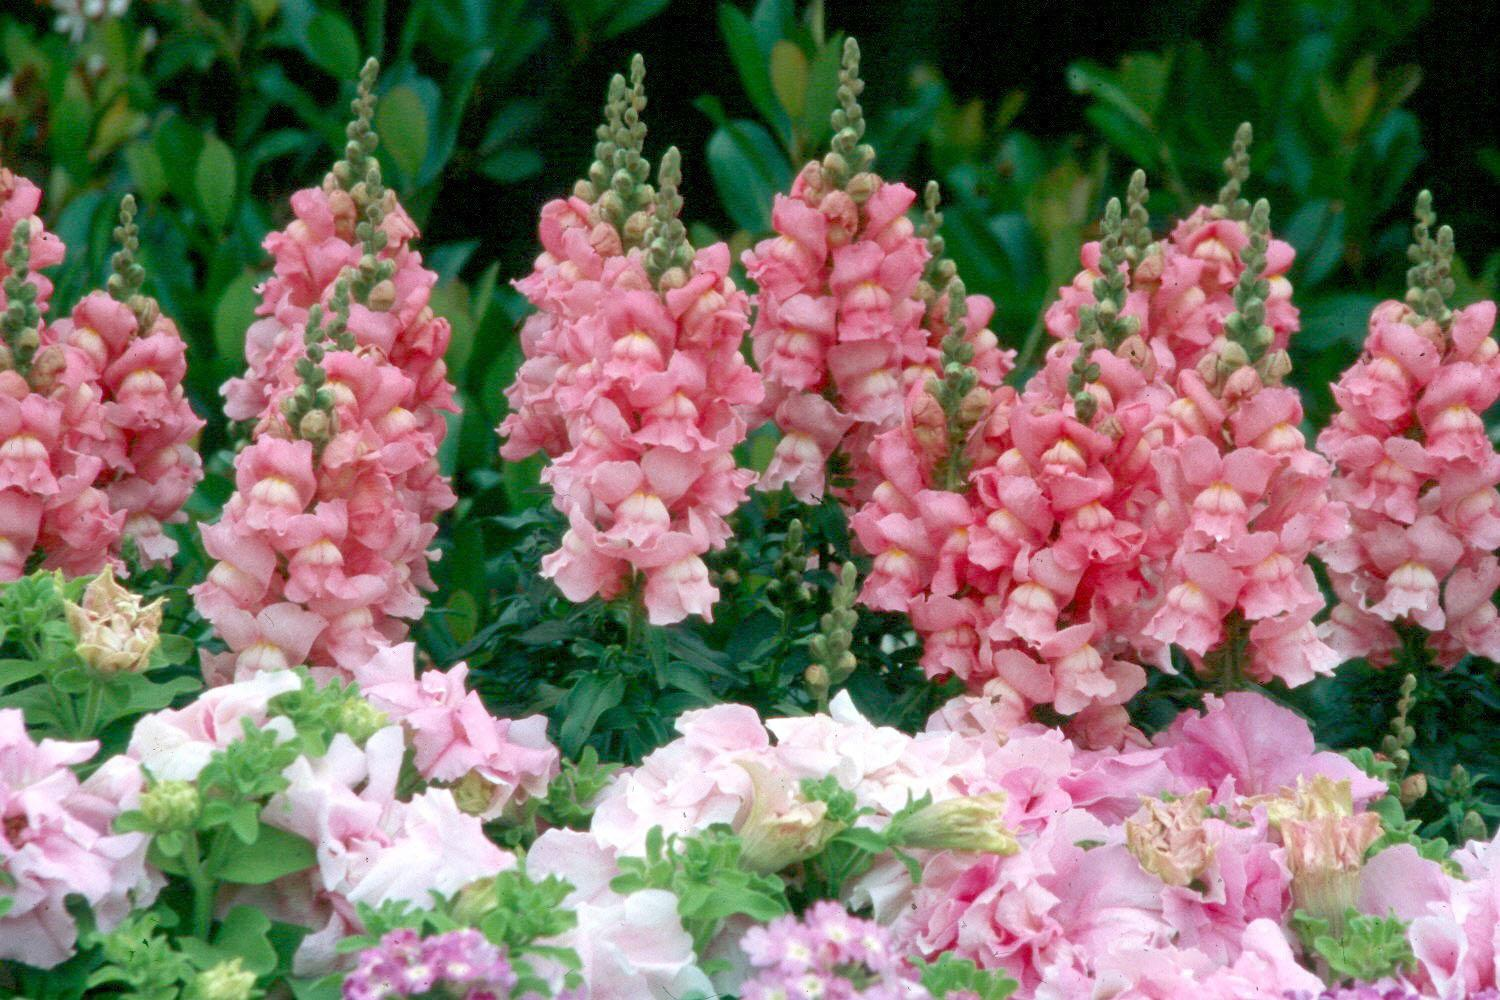 Garden centers are getting in fresh flower selections that can help add a little color to dried-out landscapes.